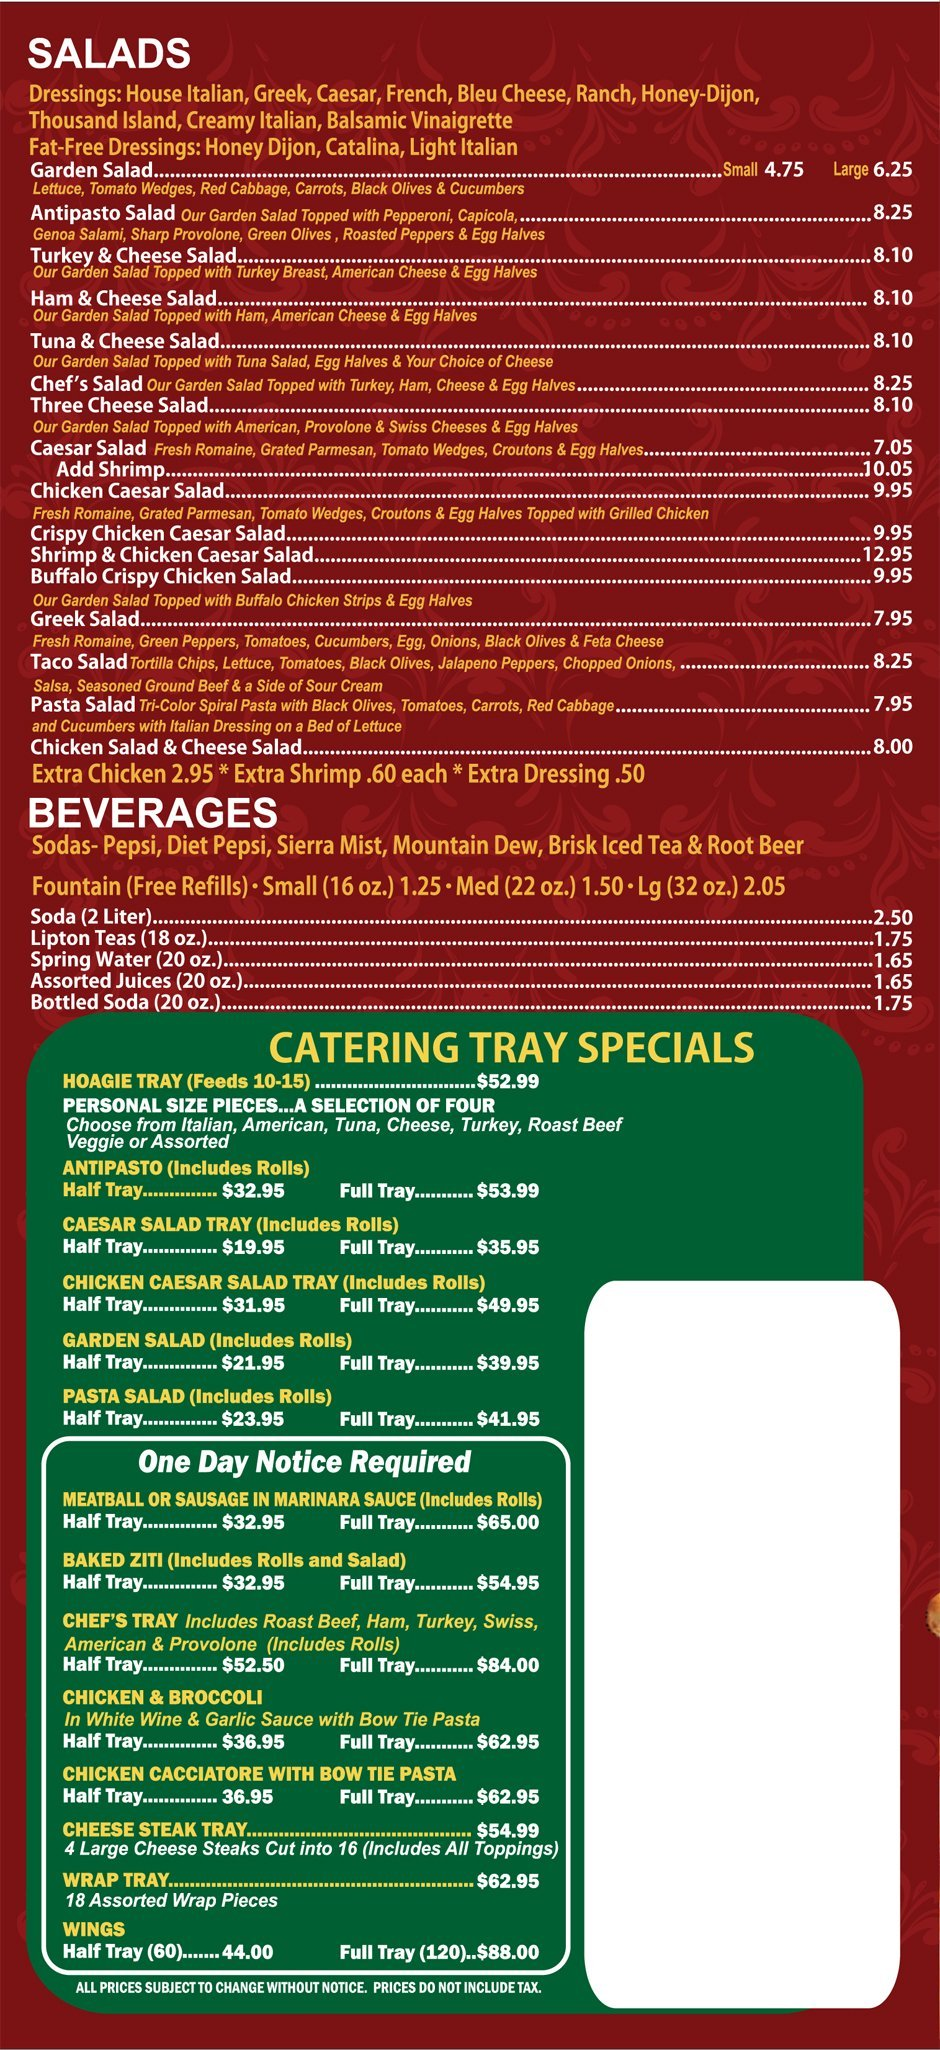 Gaetano's Steaks & Subs Menu